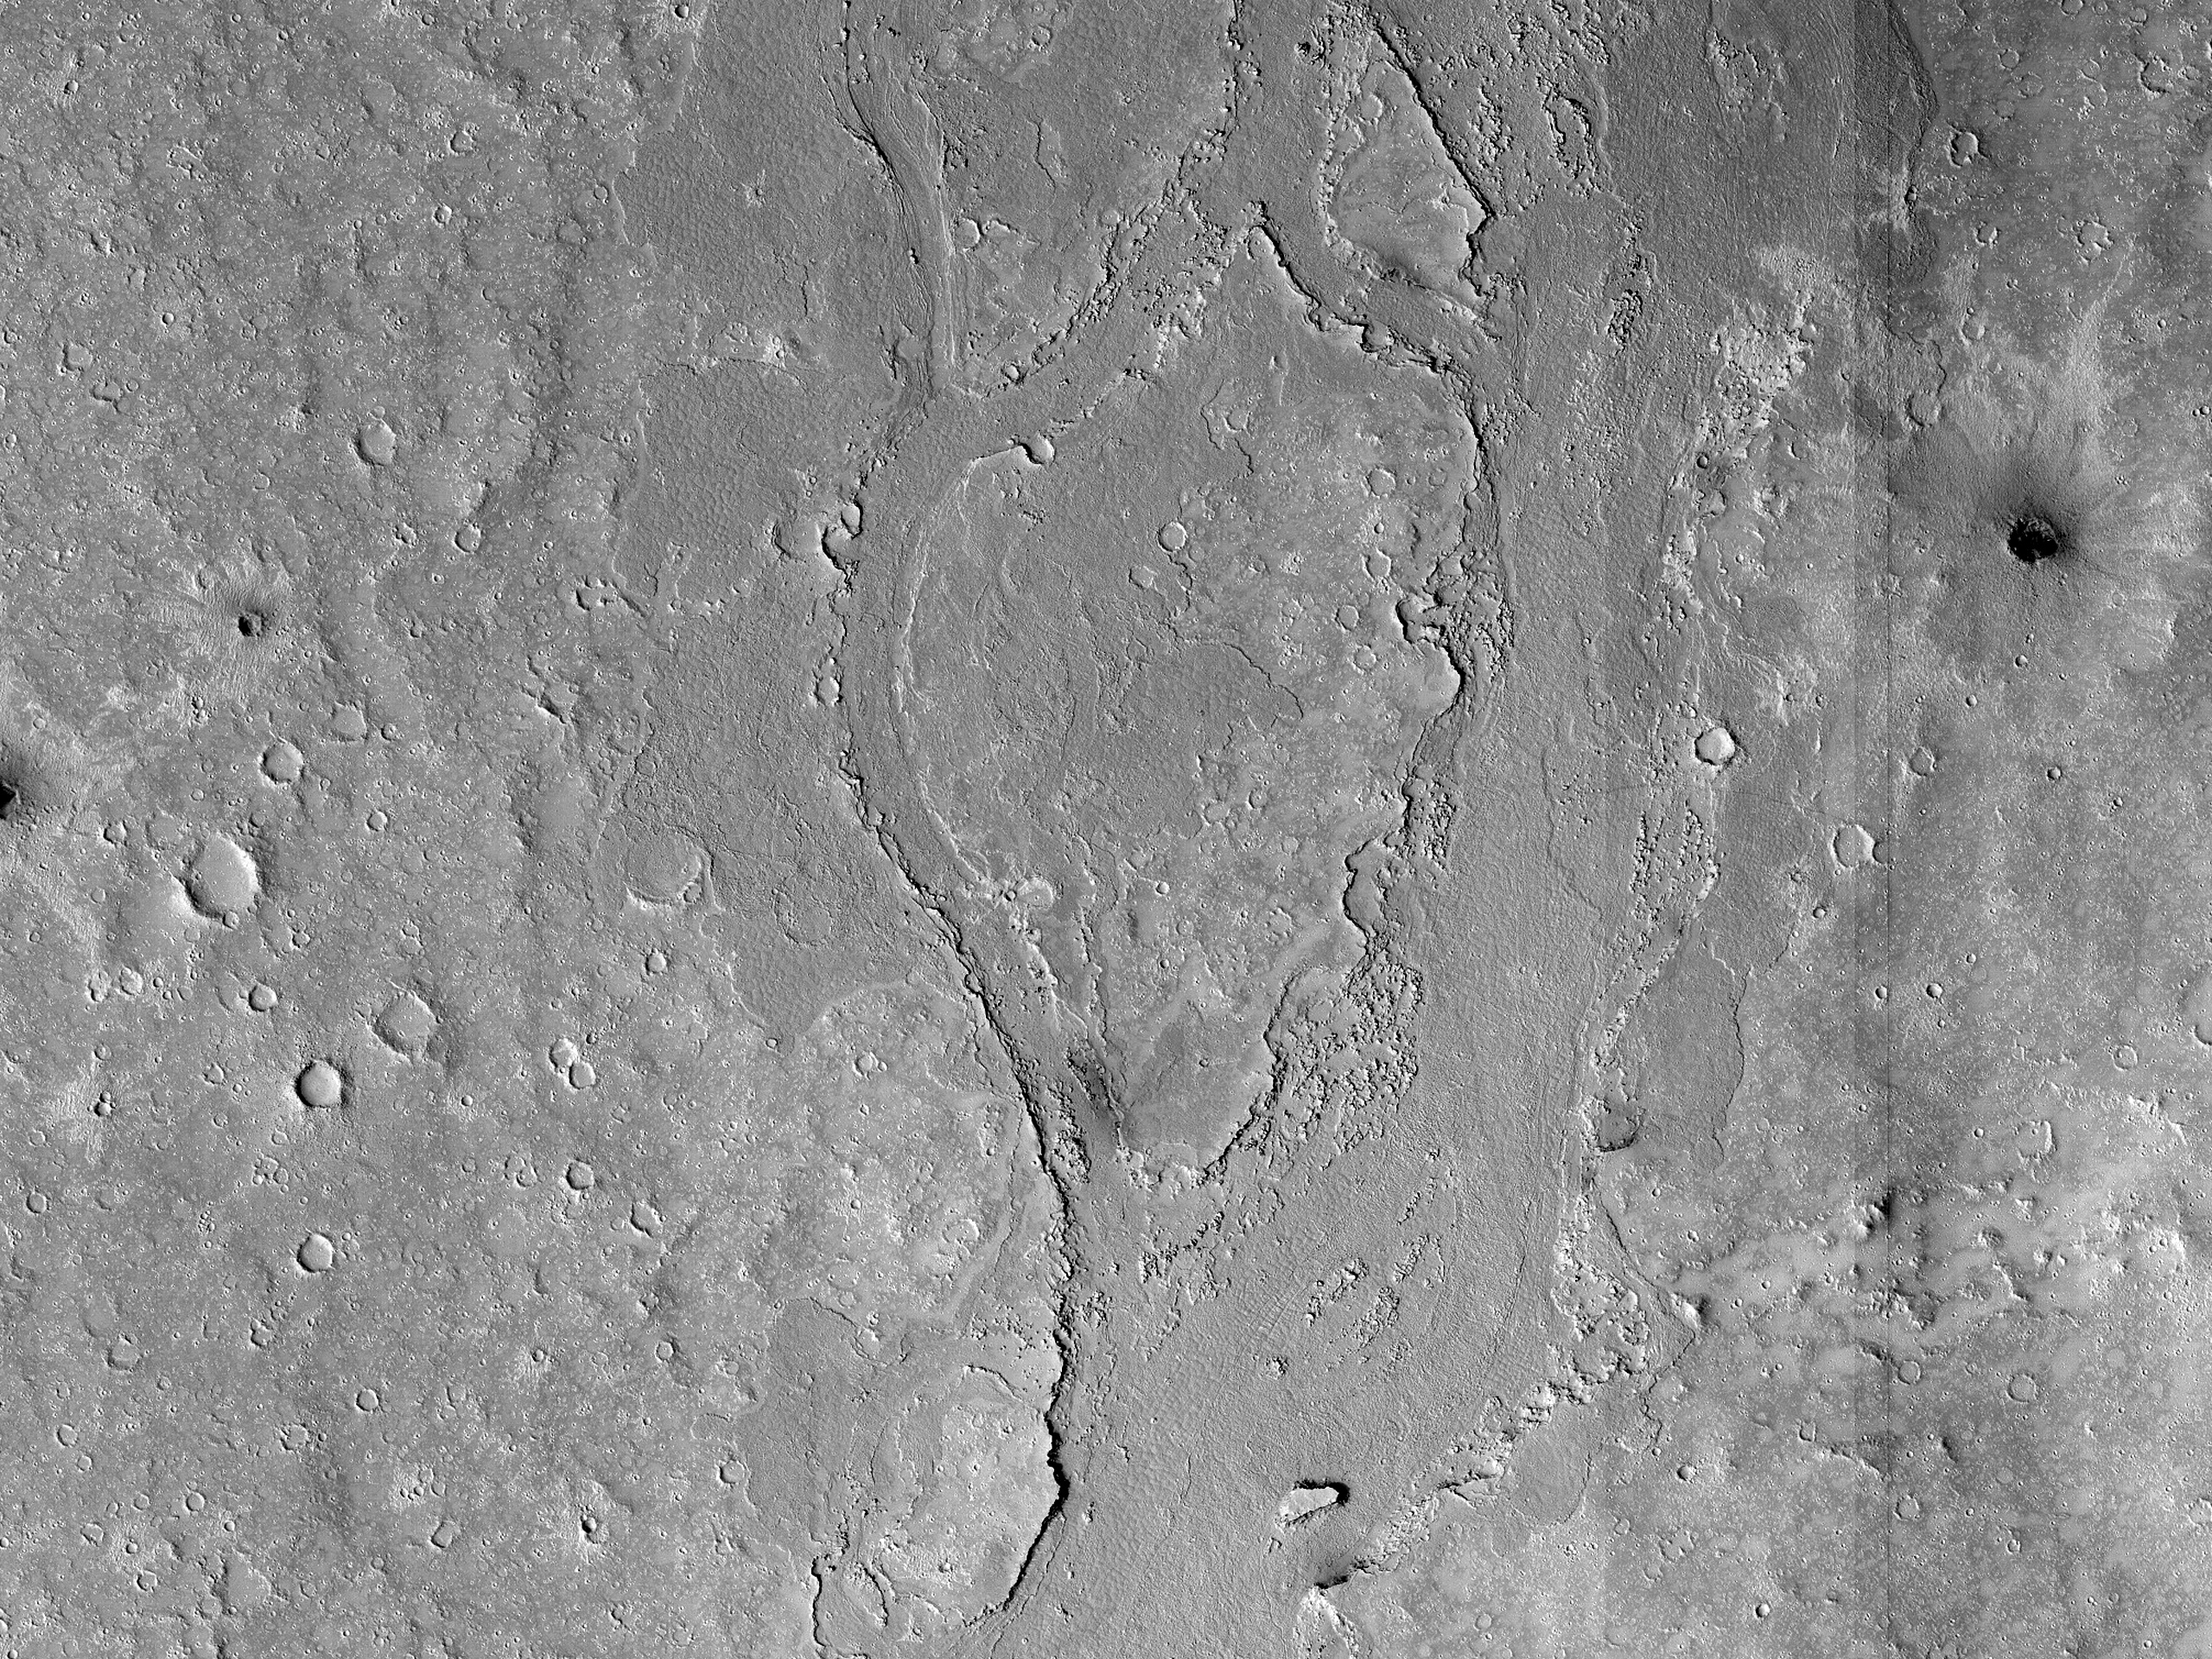 A Minor Channel in Athabasca Valles